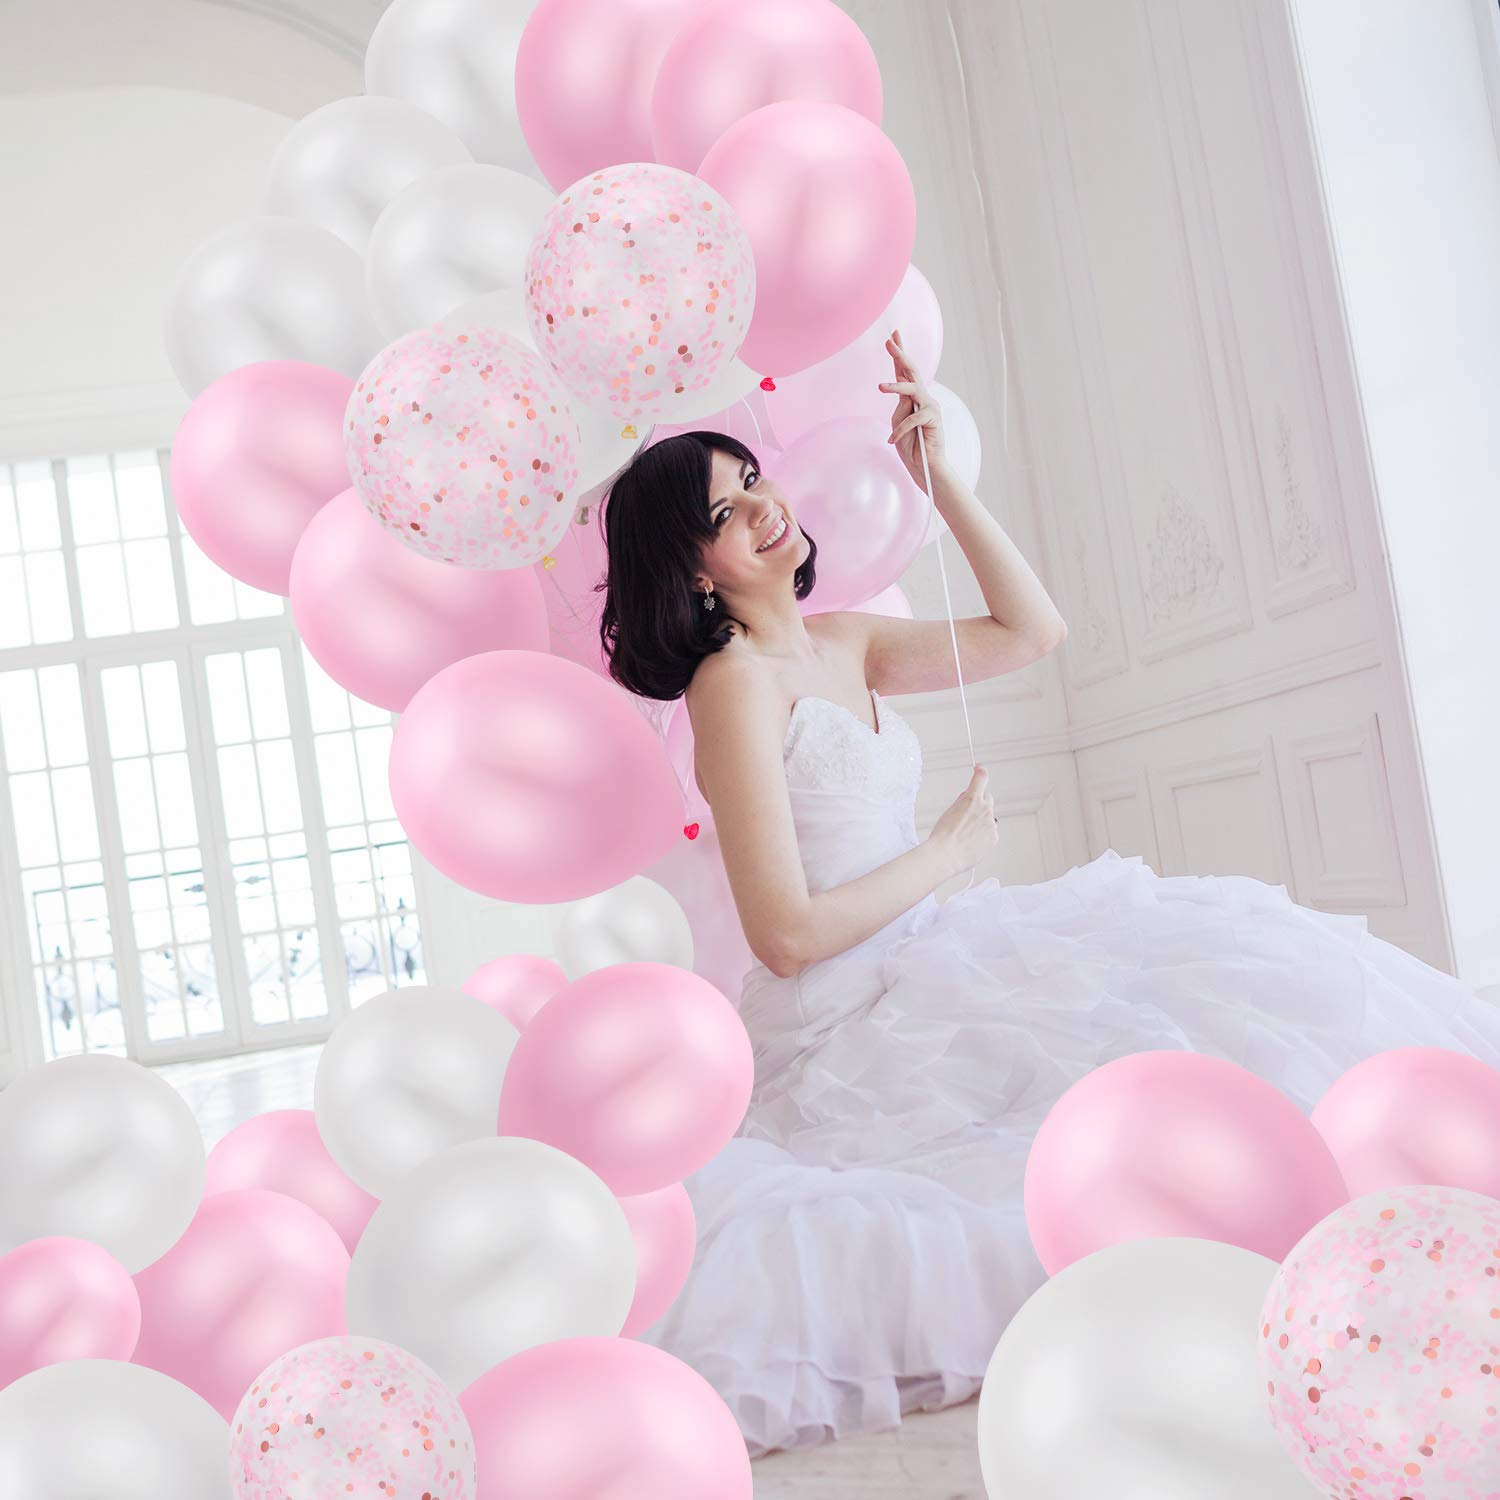 Konsait 50 Pieces 12 Inches Latex Balloons Confetti Balloons Pink and White Balloons Helium Balloons Party Supplies for Wedding Birthday Girl Baby Shower Party Decoration